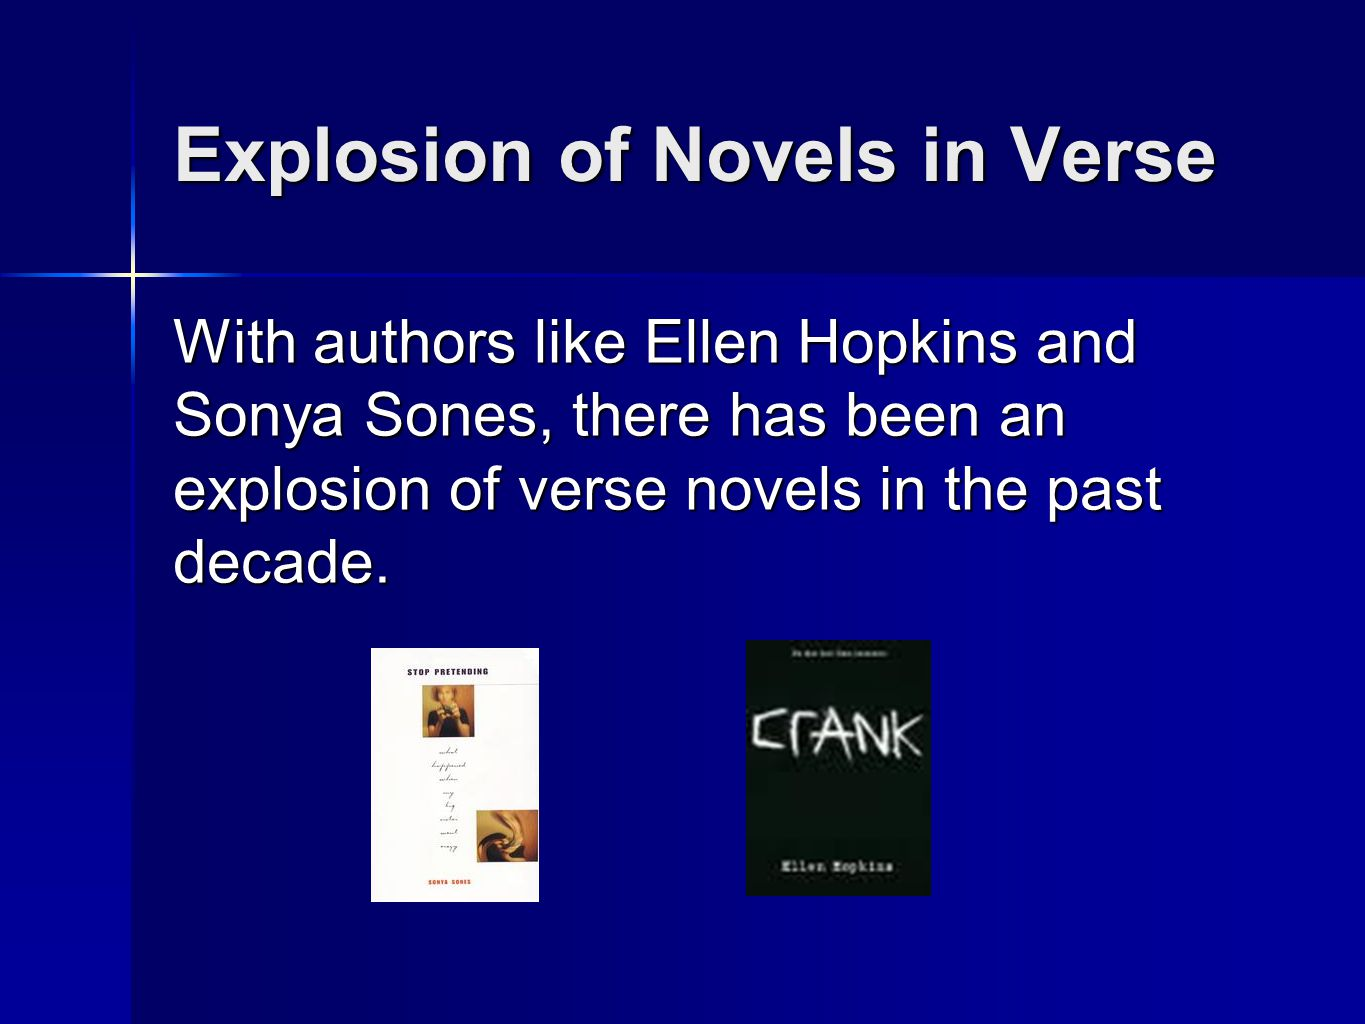 Explosion of Novels in Verse With authors like Ellen Hopkins and Sonya Sones, there has been an explosion of verse novels in the past decade.